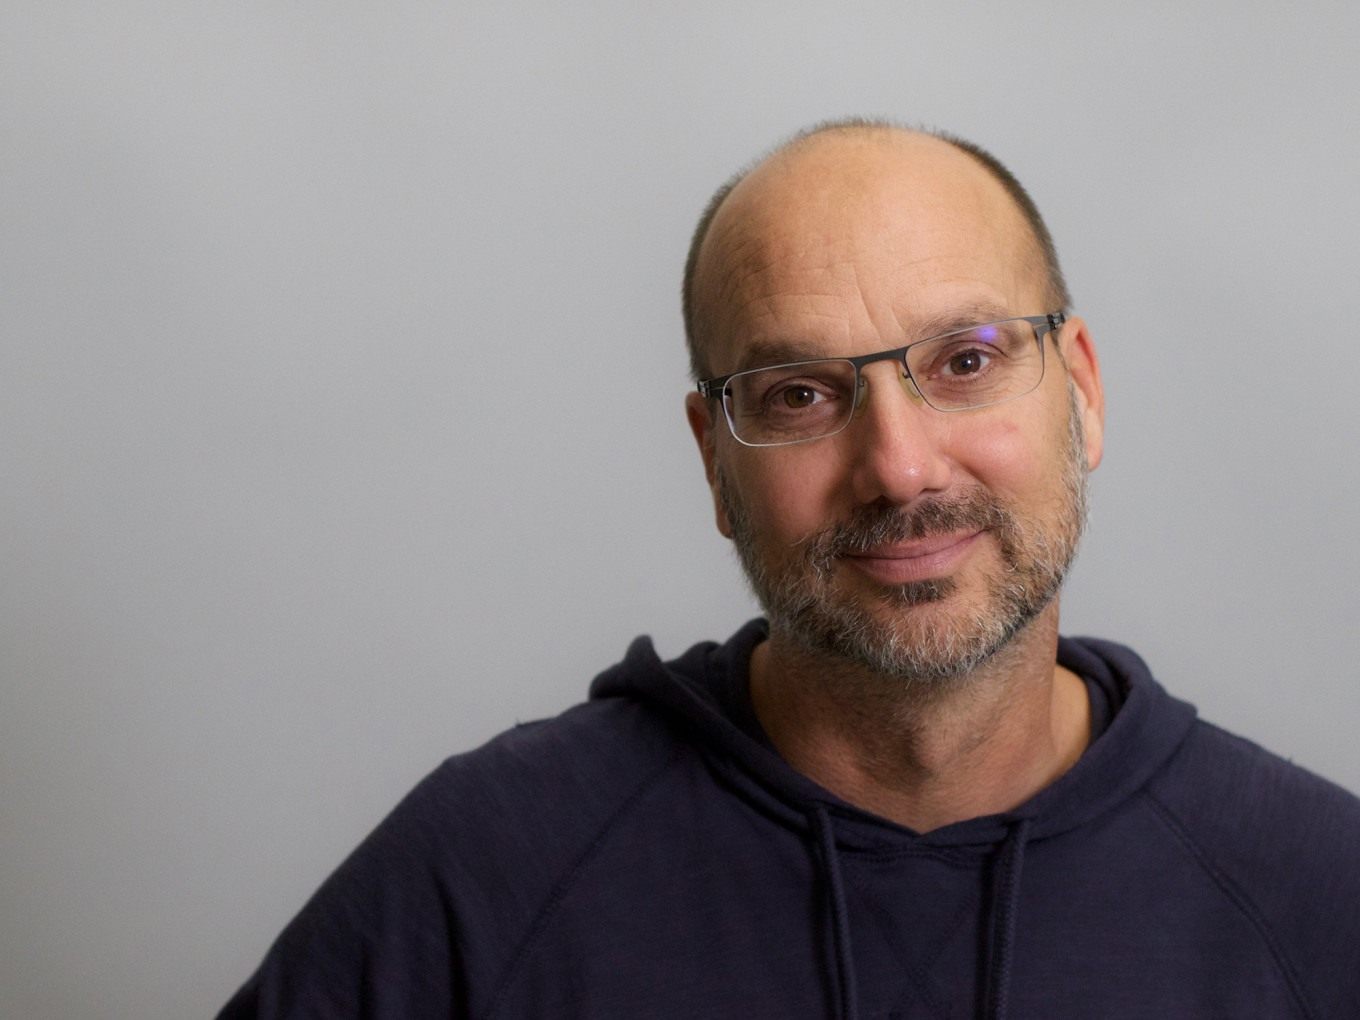 Unknown Android. Chapter 1: Andy Rubin, photo 1